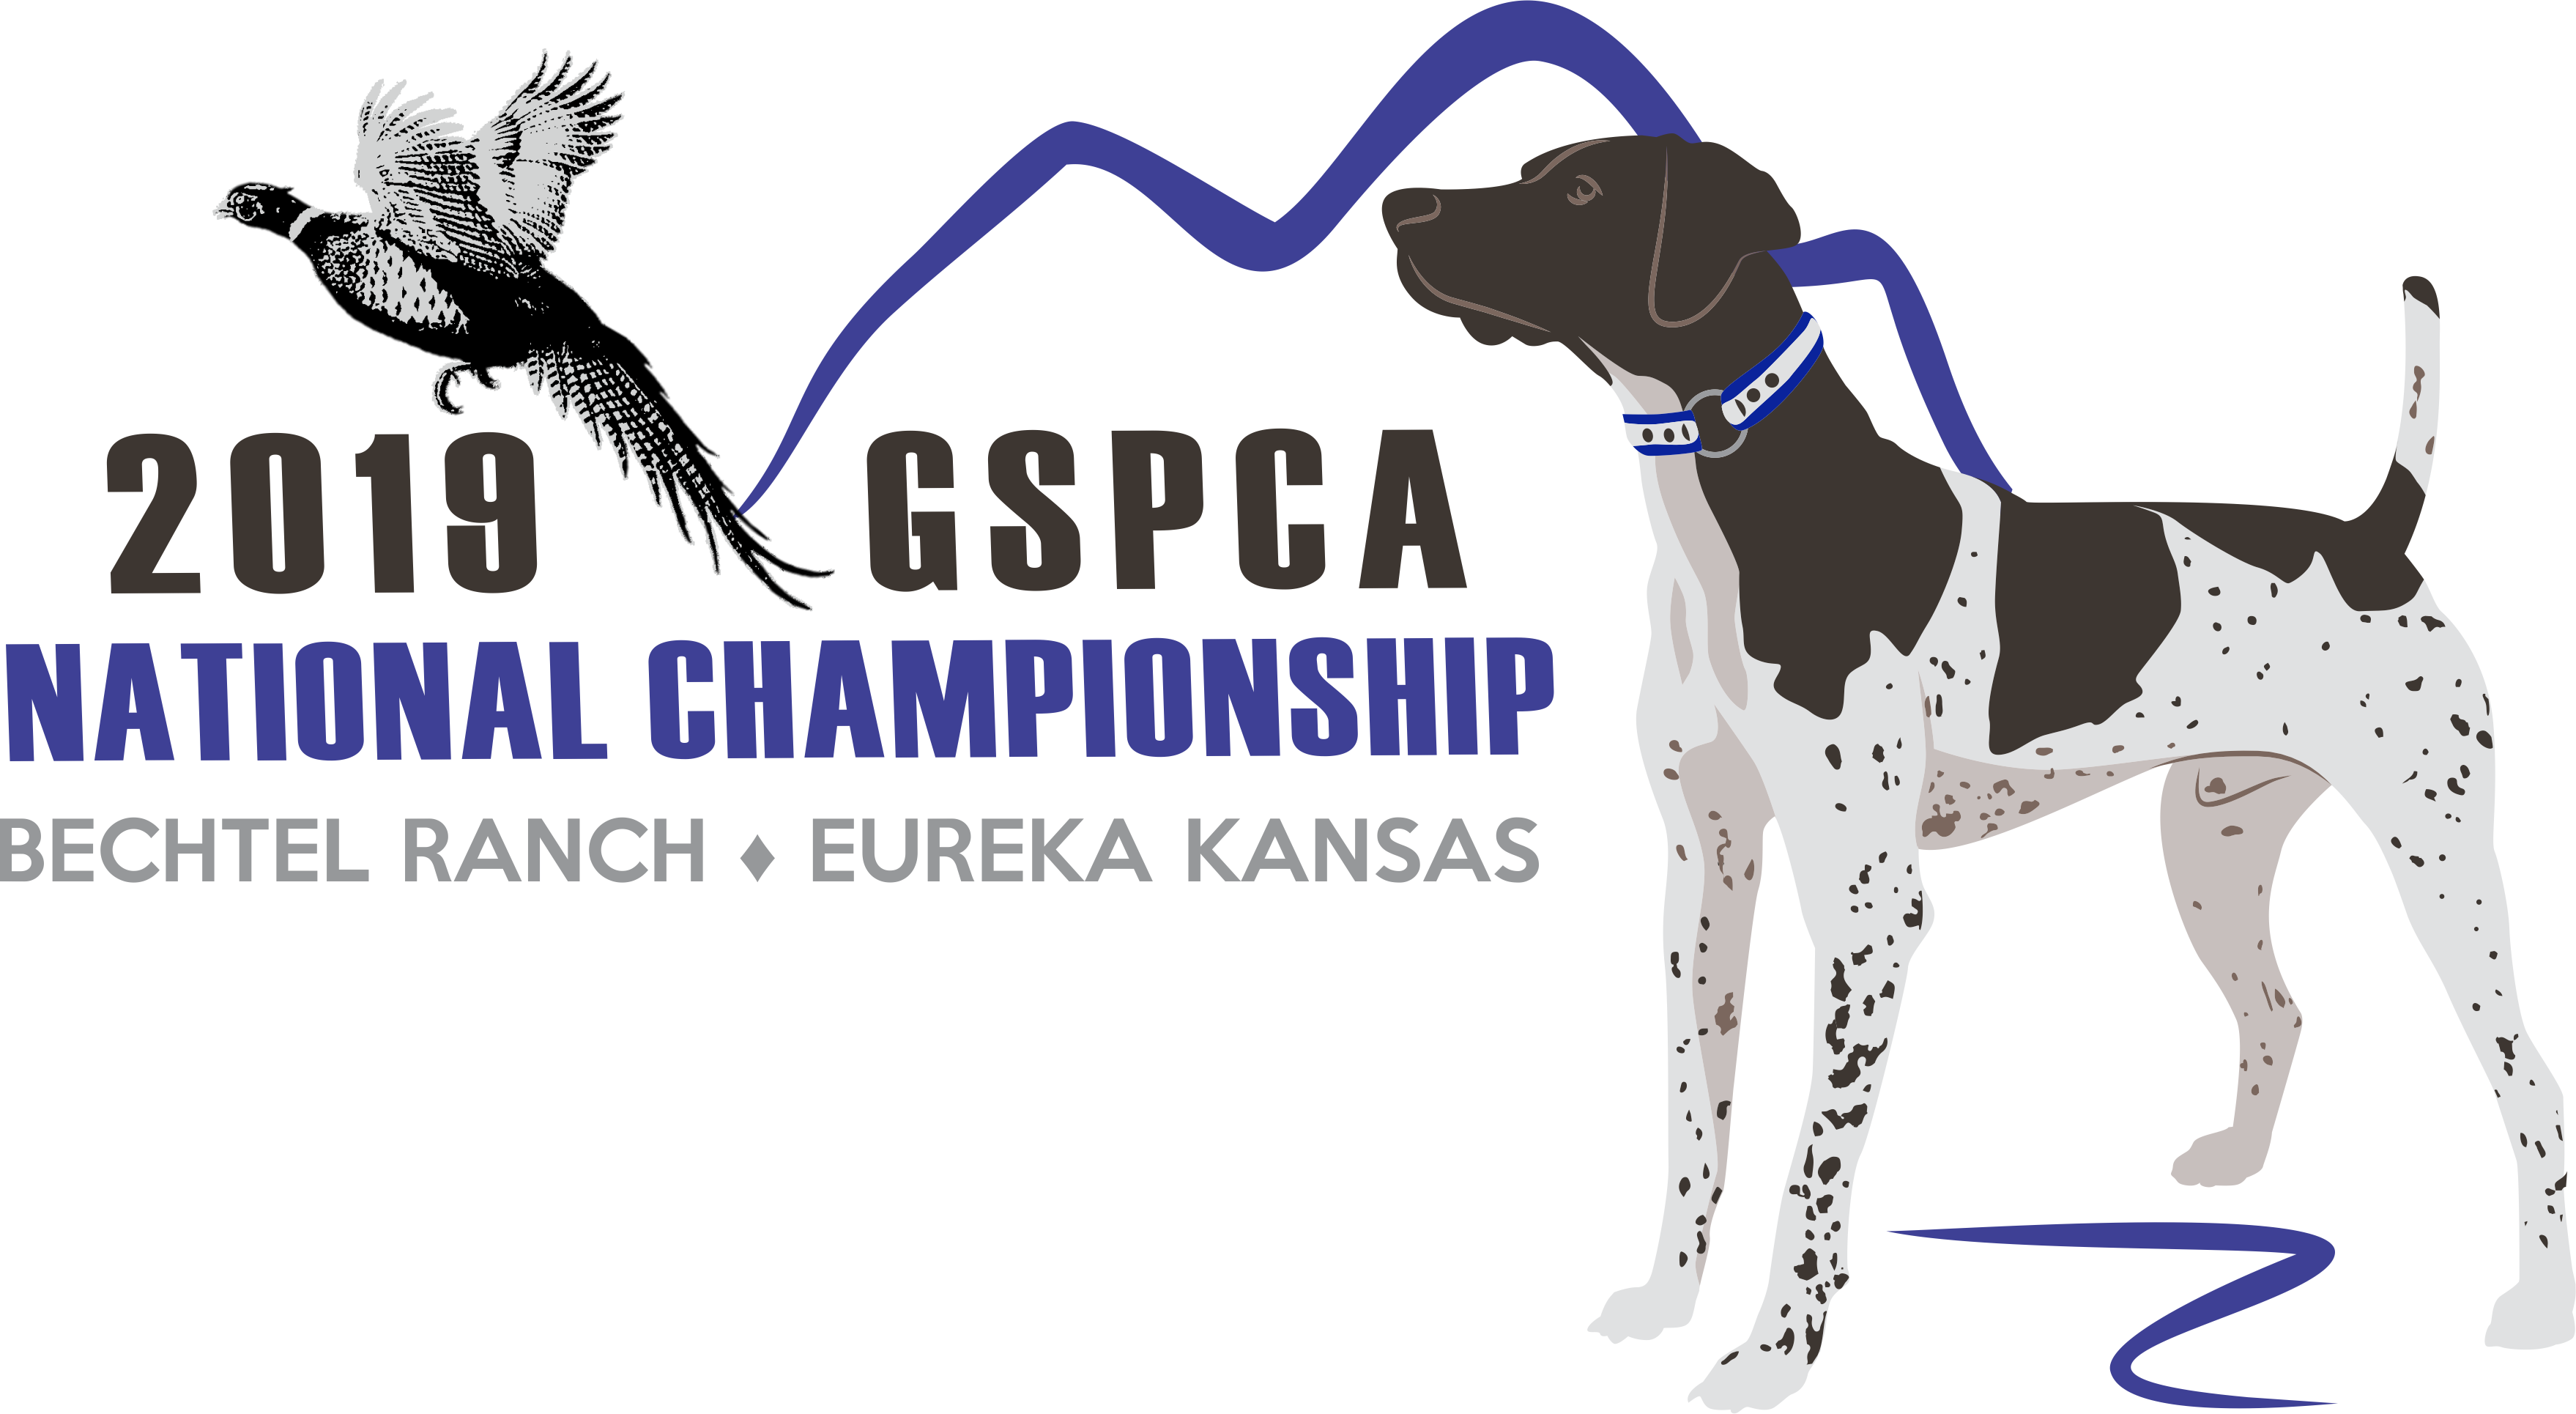 gspca-2019-final-logo.png